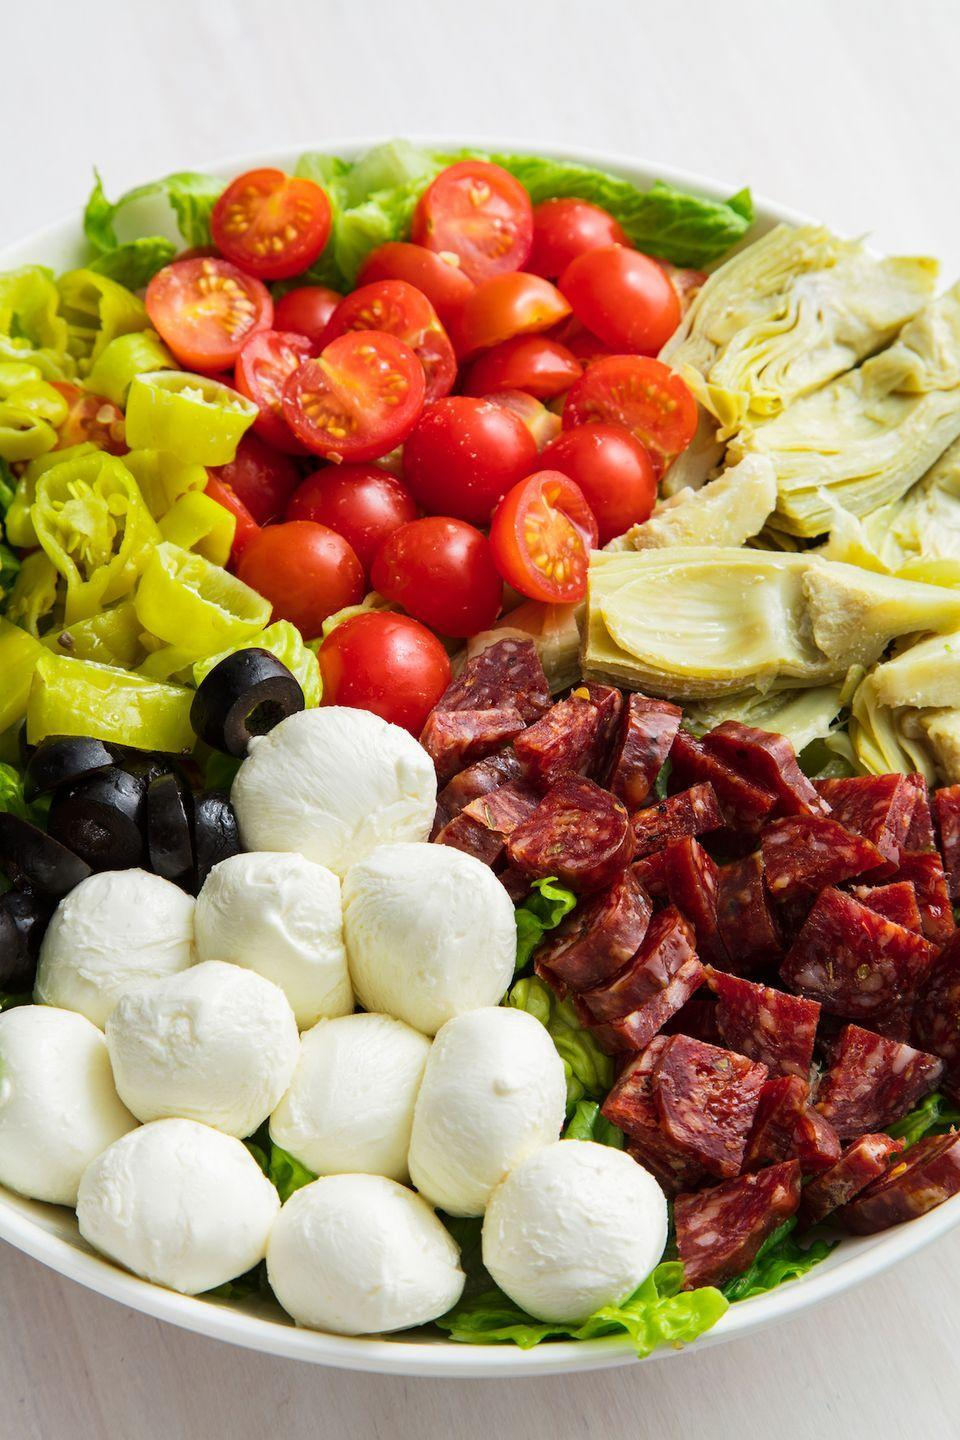 """<p>Don't show up to a summer hangout without the pasta salad.</p><p>Get the recipe from <a href=""""https://www.delish.com/cooking/recipe-ideas/a19601468/easy-pasta-salad-recipe/"""" rel=""""nofollow noopener"""" target=""""_blank"""" data-ylk=""""slk:Delish"""" class=""""link rapid-noclick-resp"""">Delish</a>. </p>"""